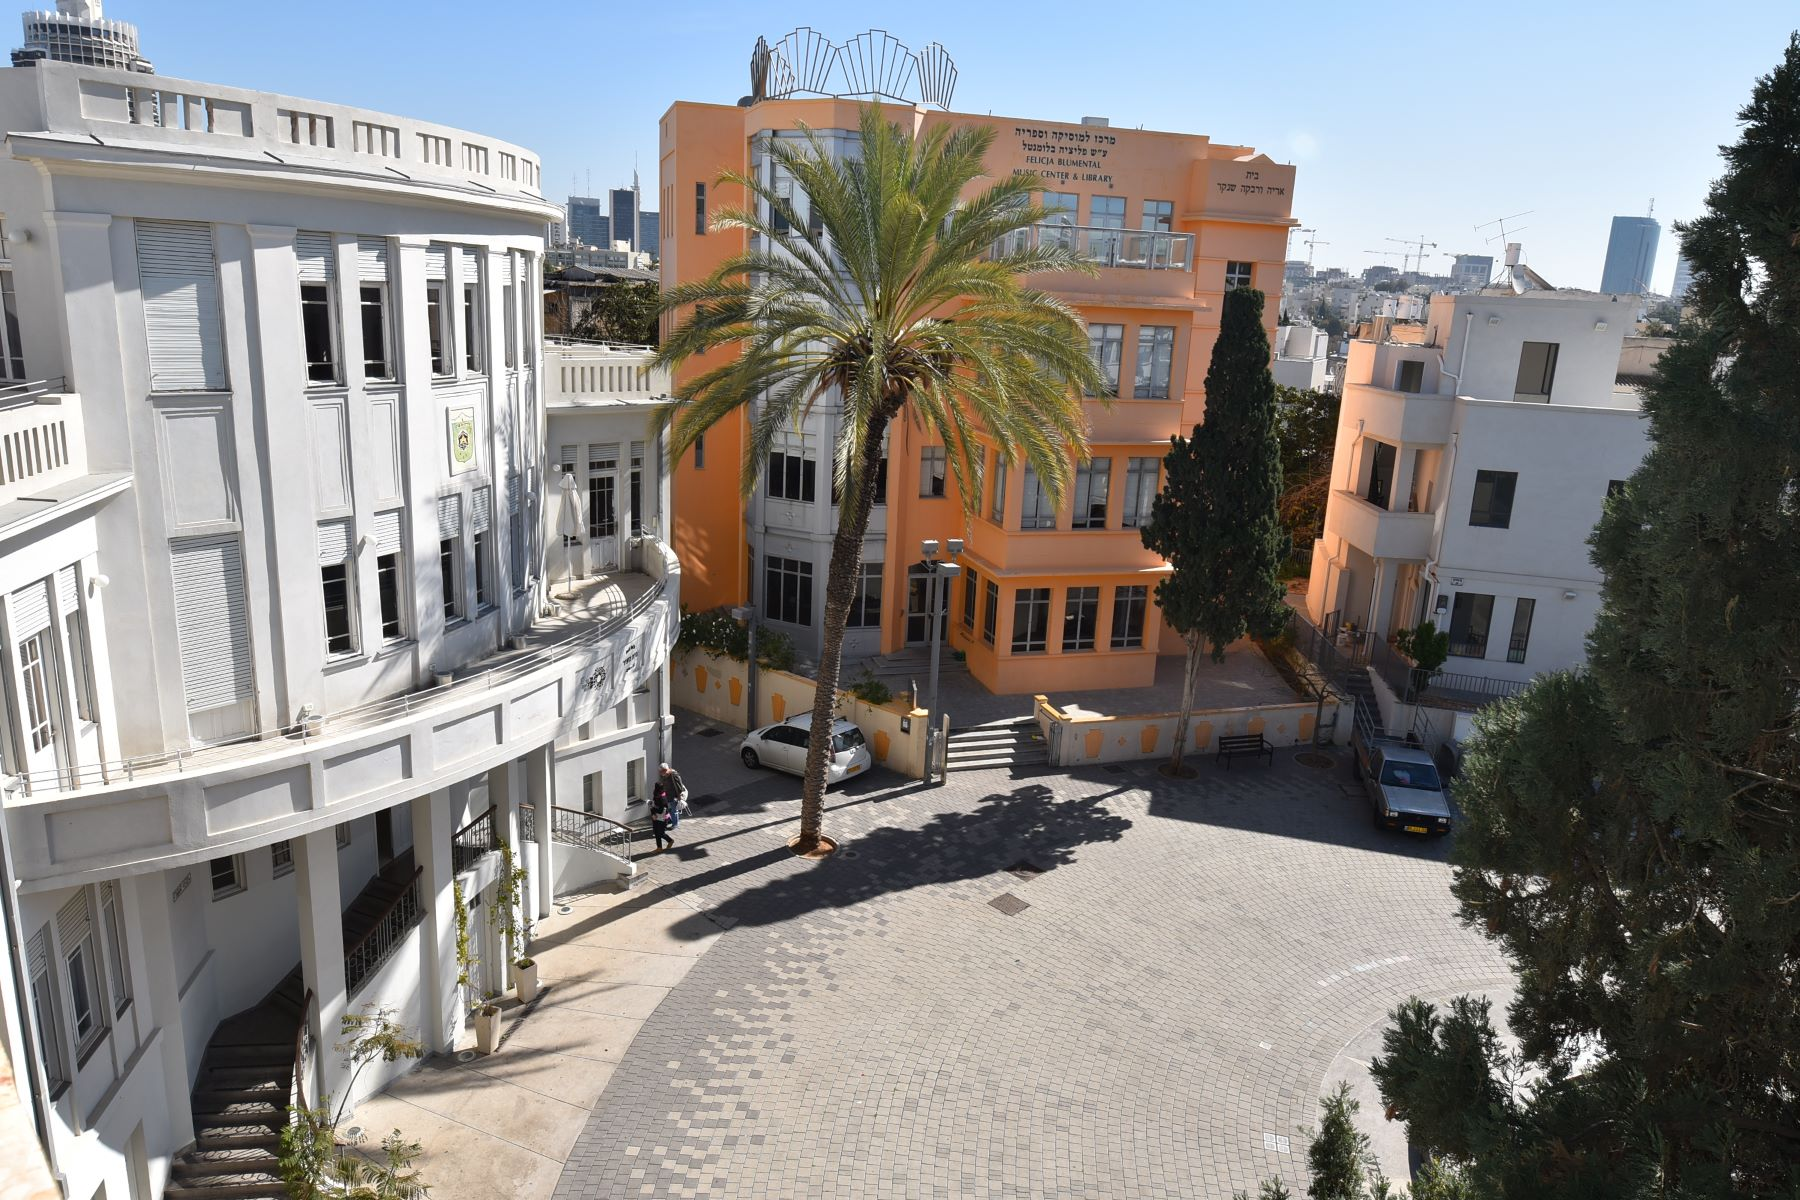 Additional photo for property listing at Bialik Square renovated building entire floor new apartment Tel Aviv, Israel Israel